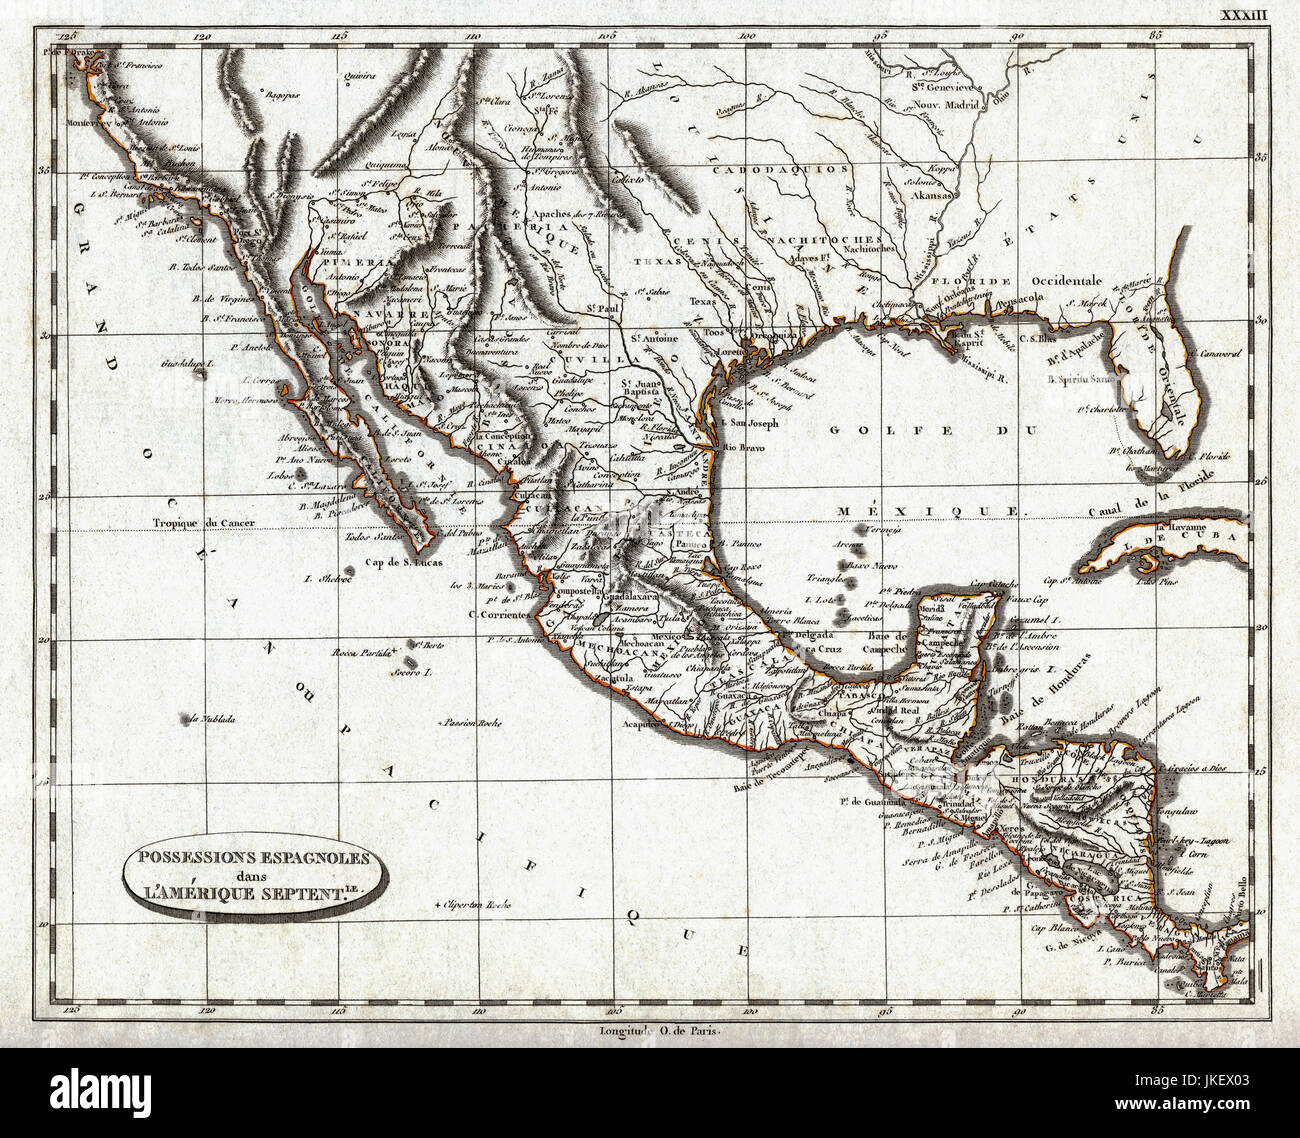 Map Of Texas And Florida.1804 Pinkerton Map Of Colonial Spanish America Including Mexico